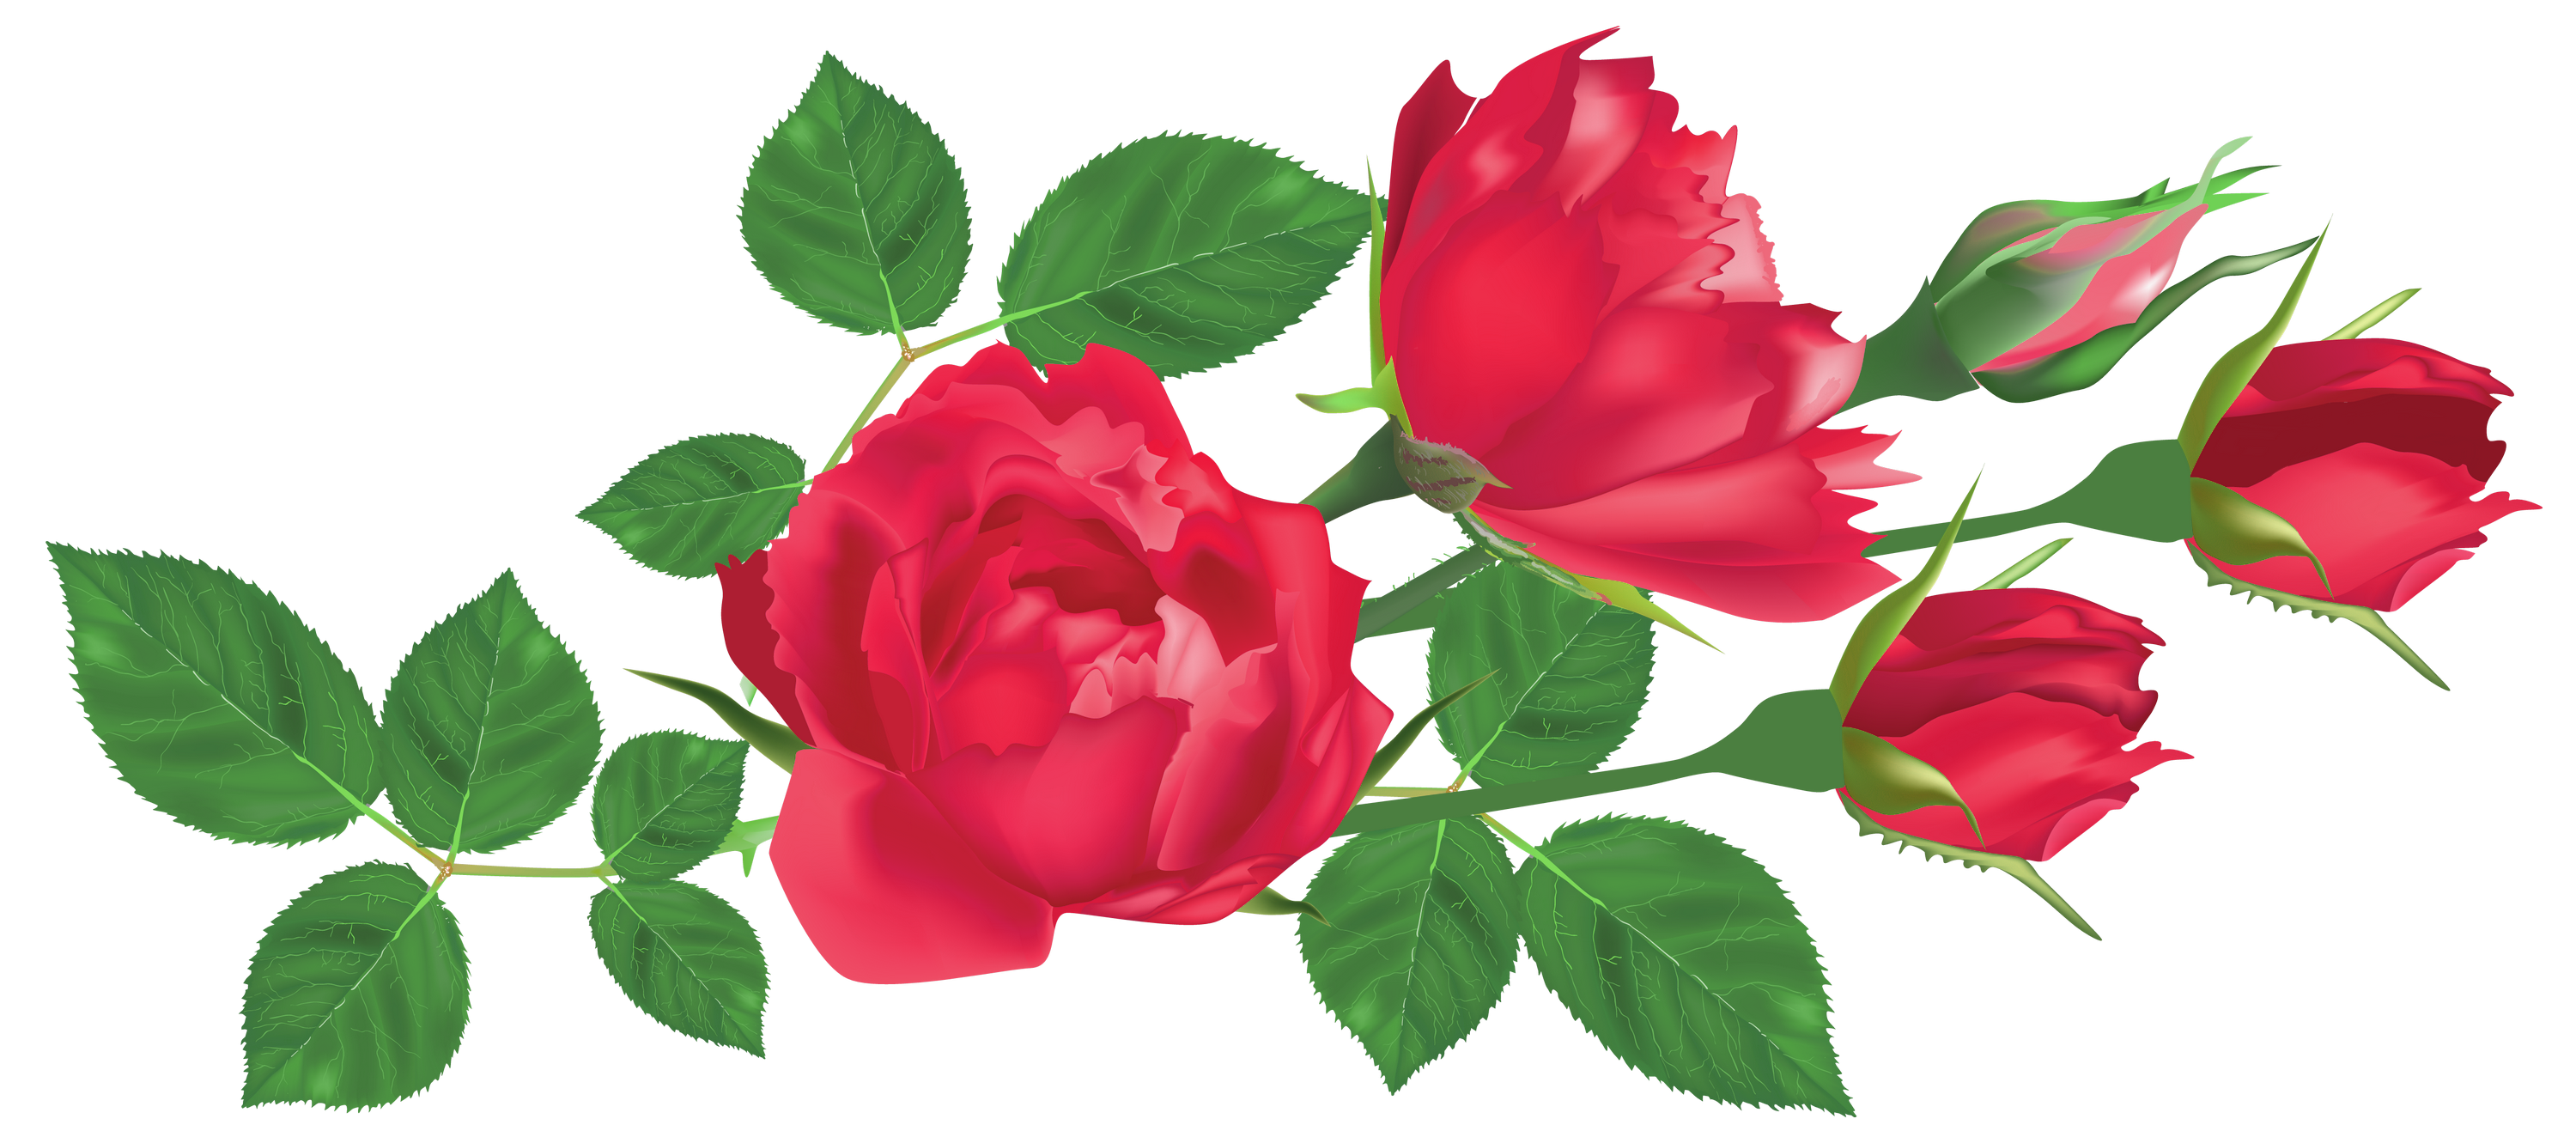 Transparent red roses png. Rose clipart leaf